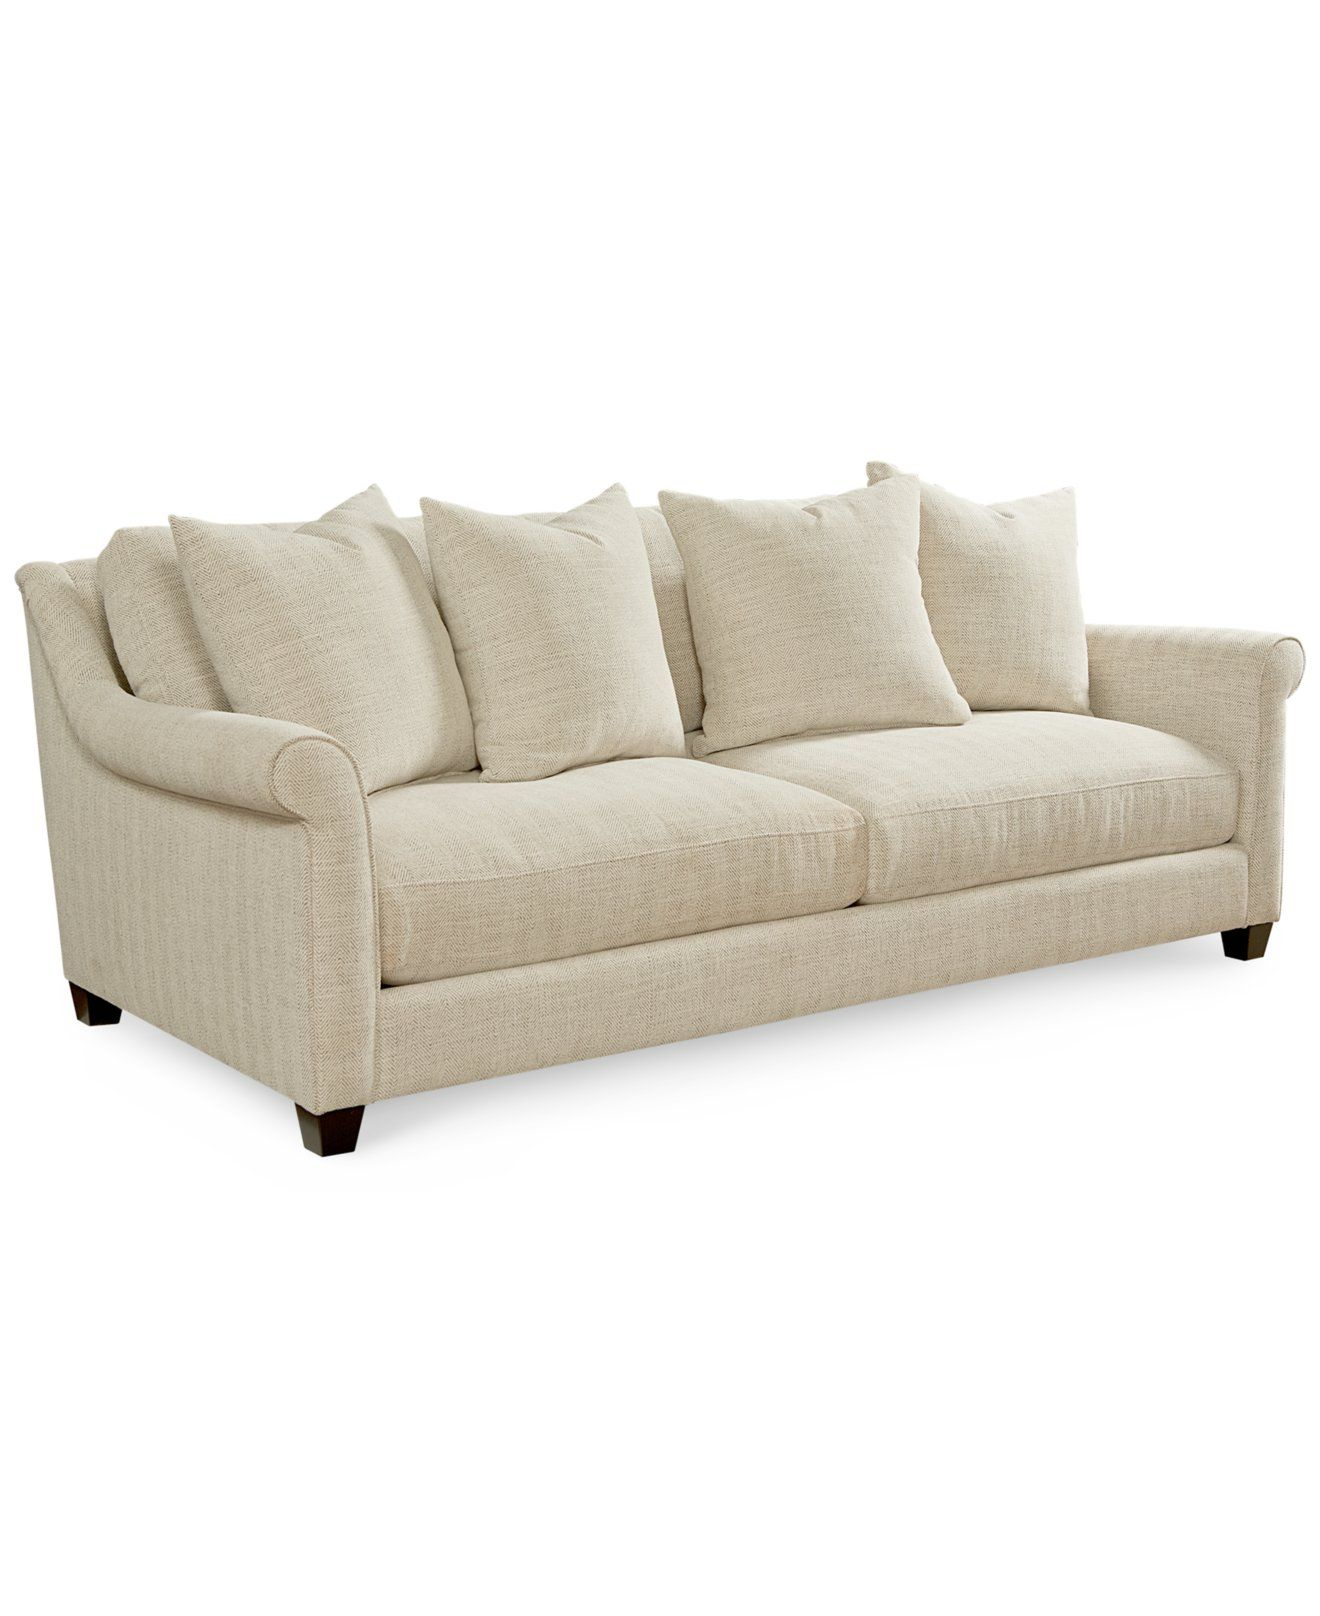 Westen Sofa Living Room Furniture Furniture Macy s